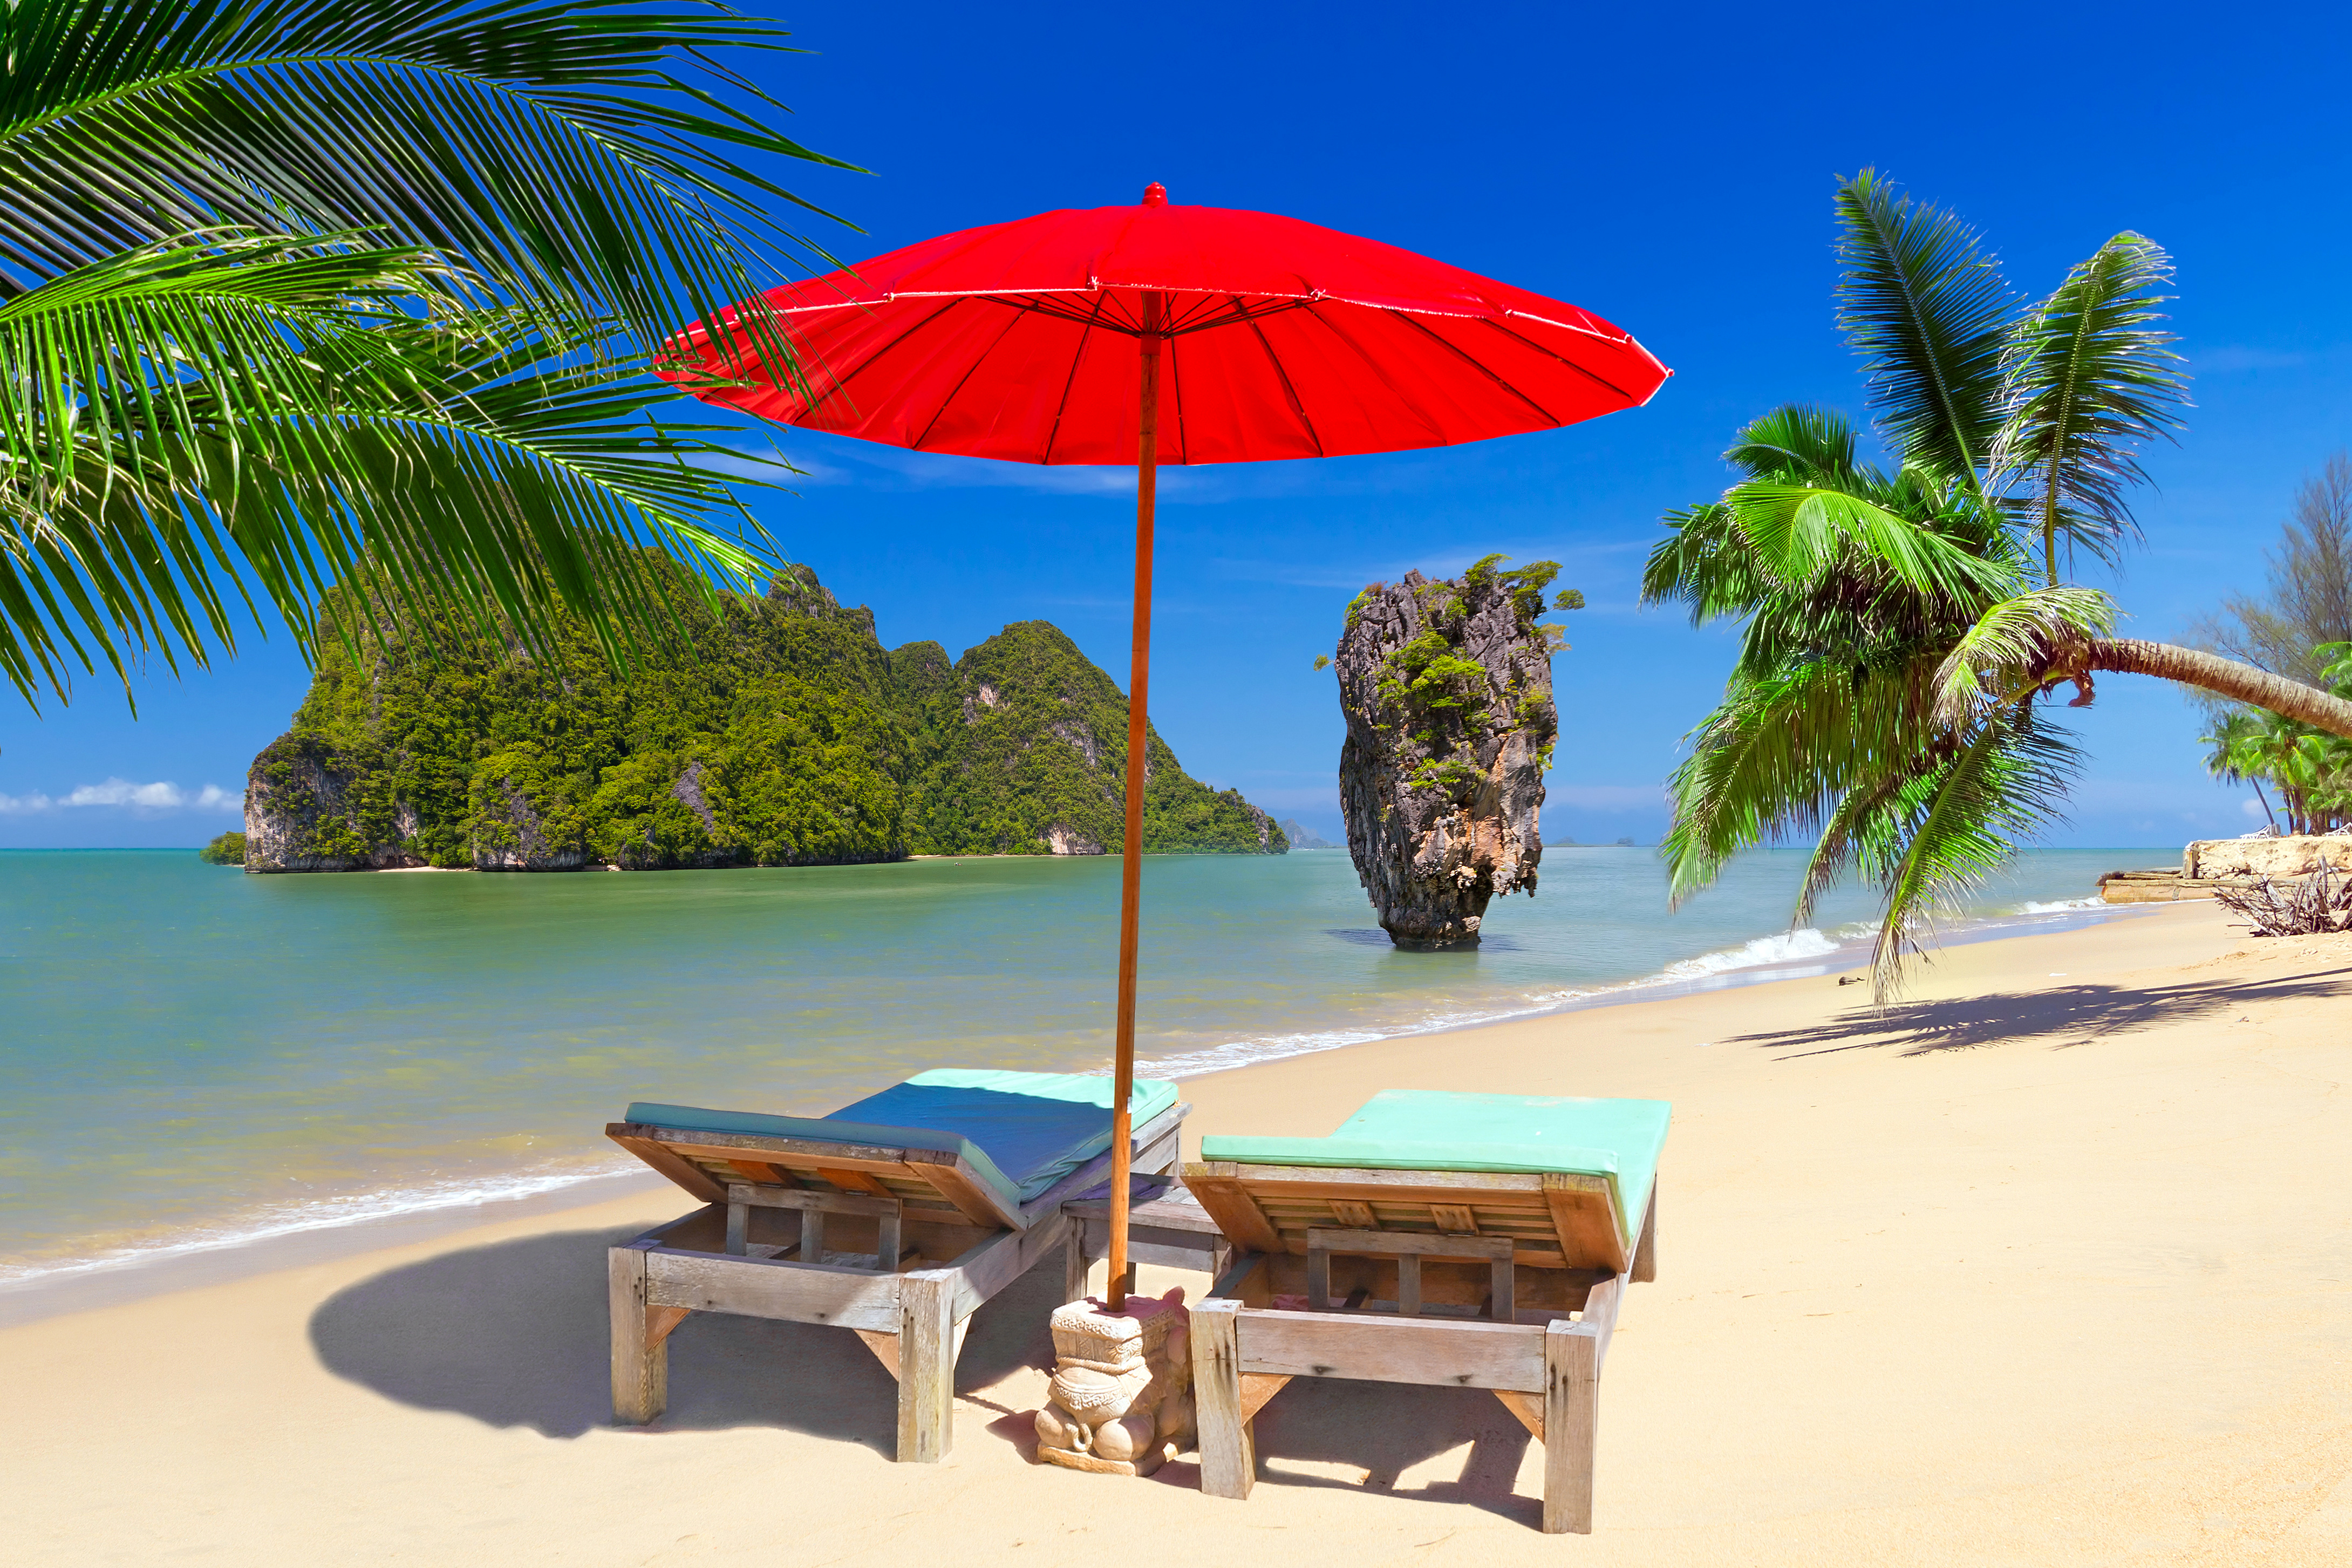 Beach Chairs and Umbrella on Thailand Beach